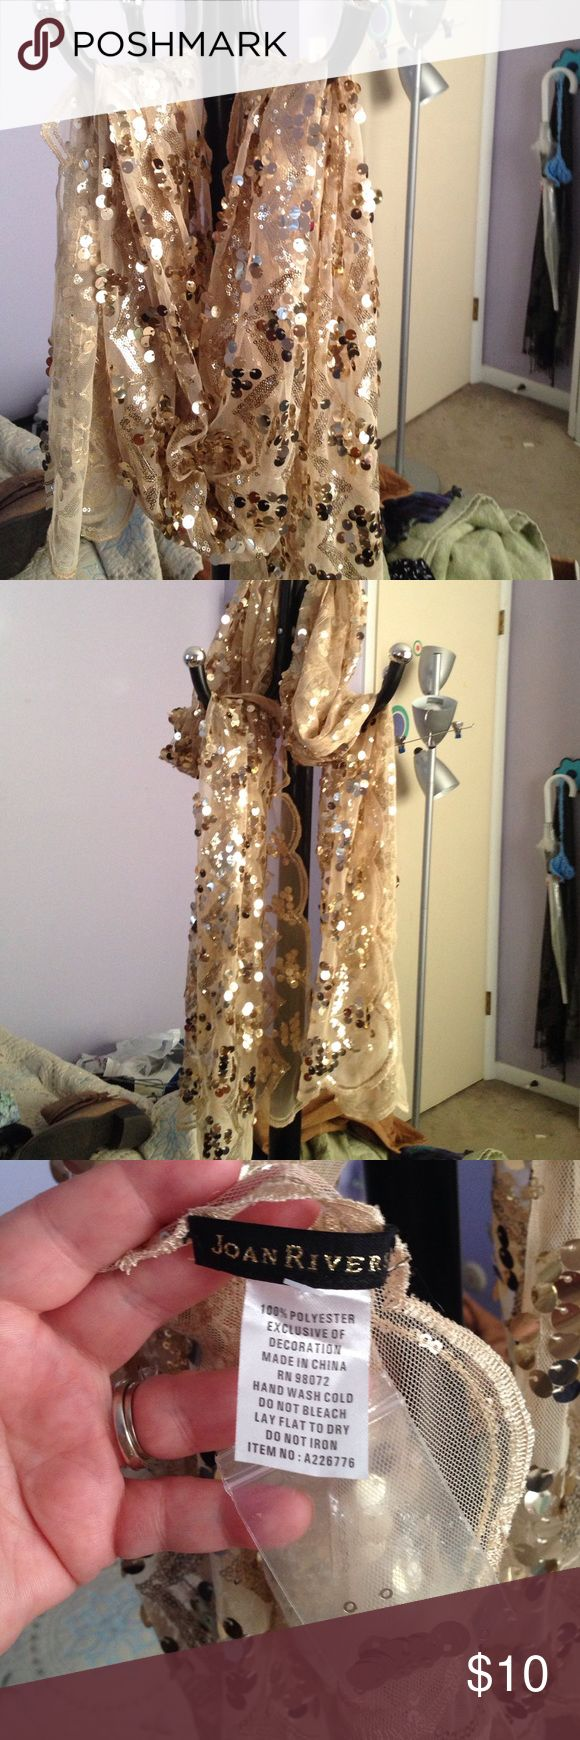 Gold sequin scarf This is a really pretty scarf or can be worn as a shawl for that special night out, wedding,etc joan rivers Accessories Scarves & Wraps